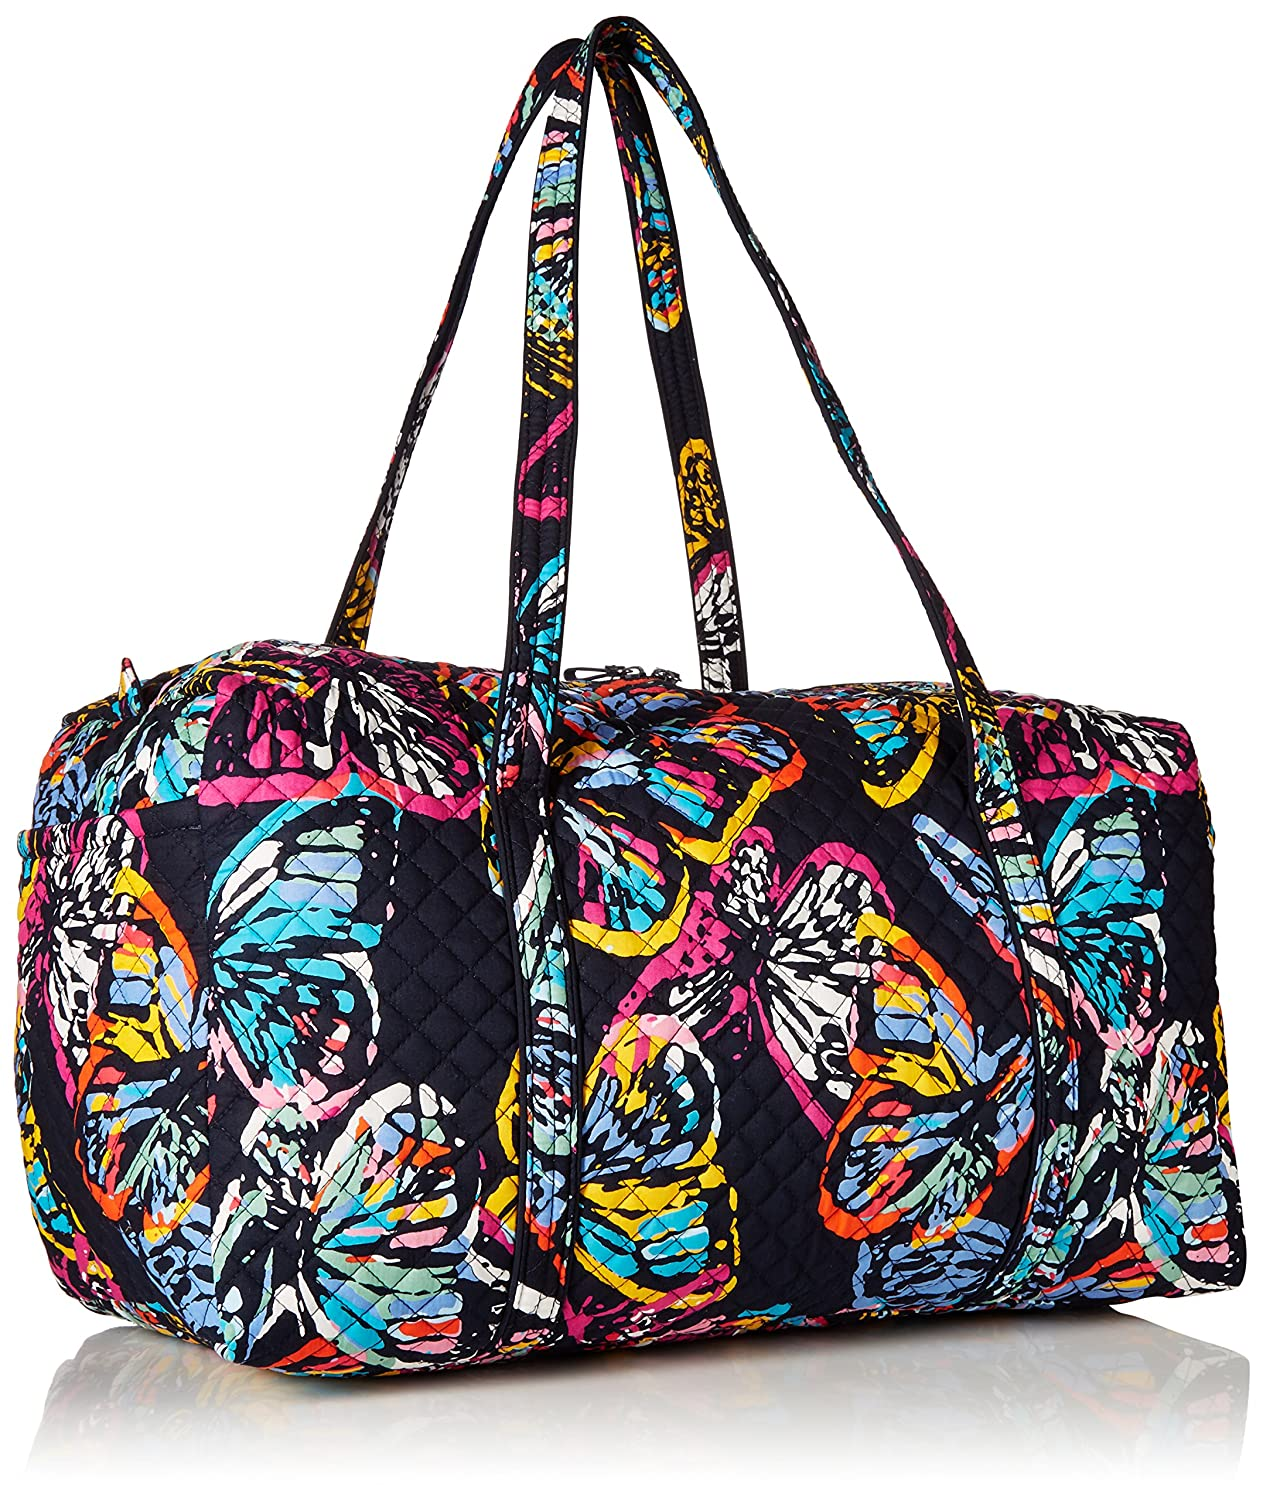 15737cdea Amazon.com: Vera Bradley Iconic Large Travel Duffel, Signature Cotton,  Butterfly Flutter, butterfly flutter, One Size: Clothing